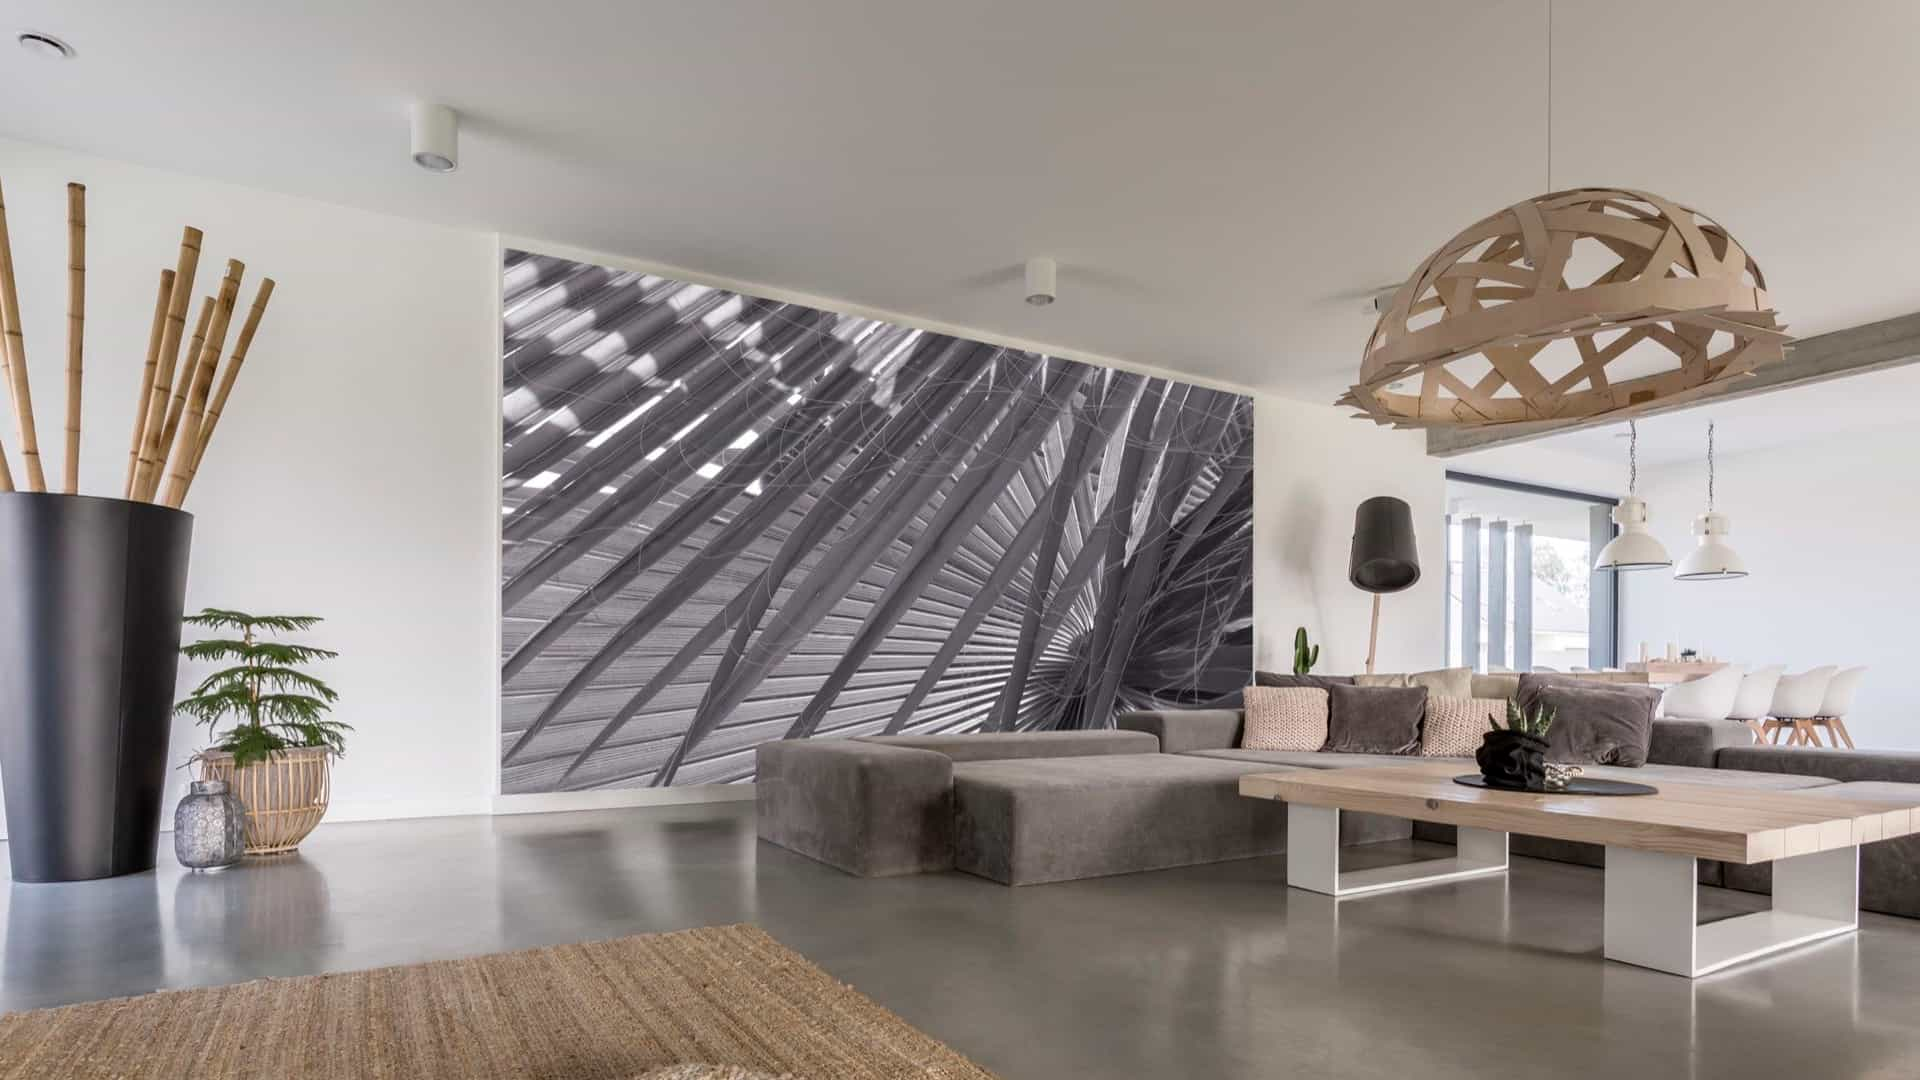 Office Wall Murals: Our Top Tips